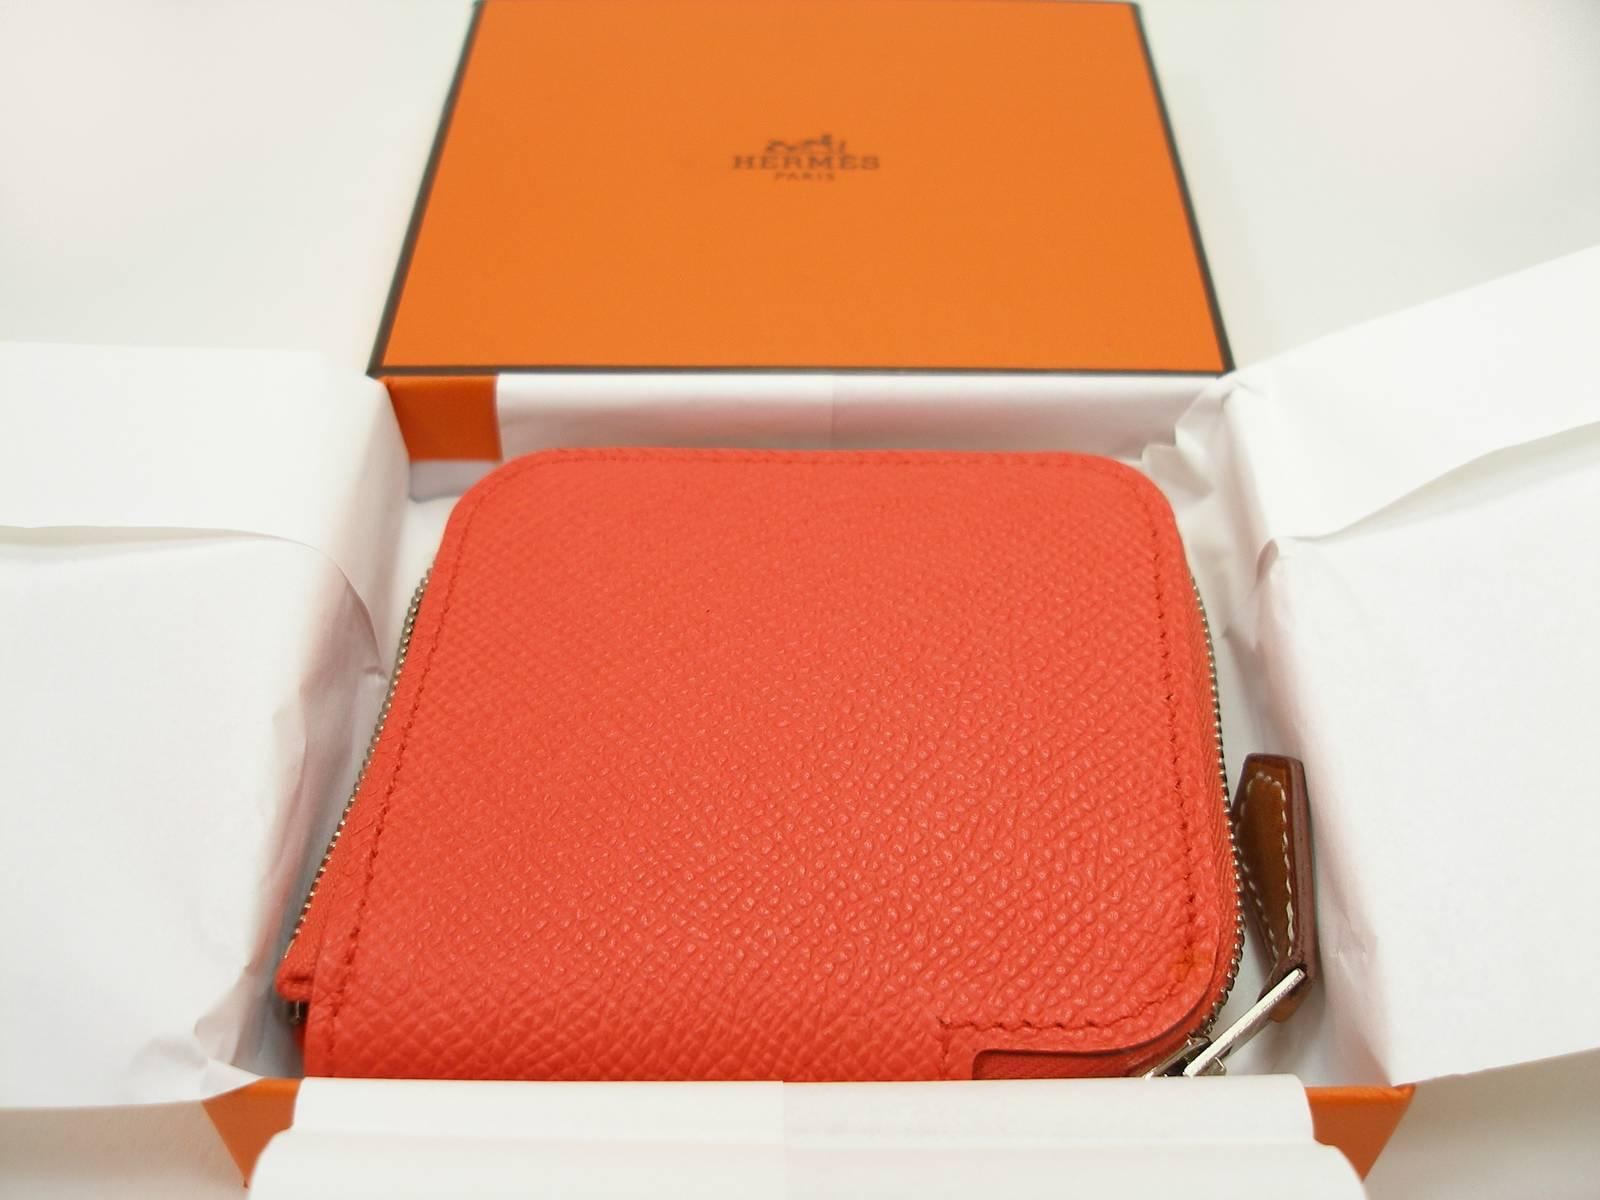 57323da94e91 ... coupon small change coin purse hermés silkin etriers 654 orange poppy  brand new for 5aec0 469b5 purchase aaa quality hermes ...